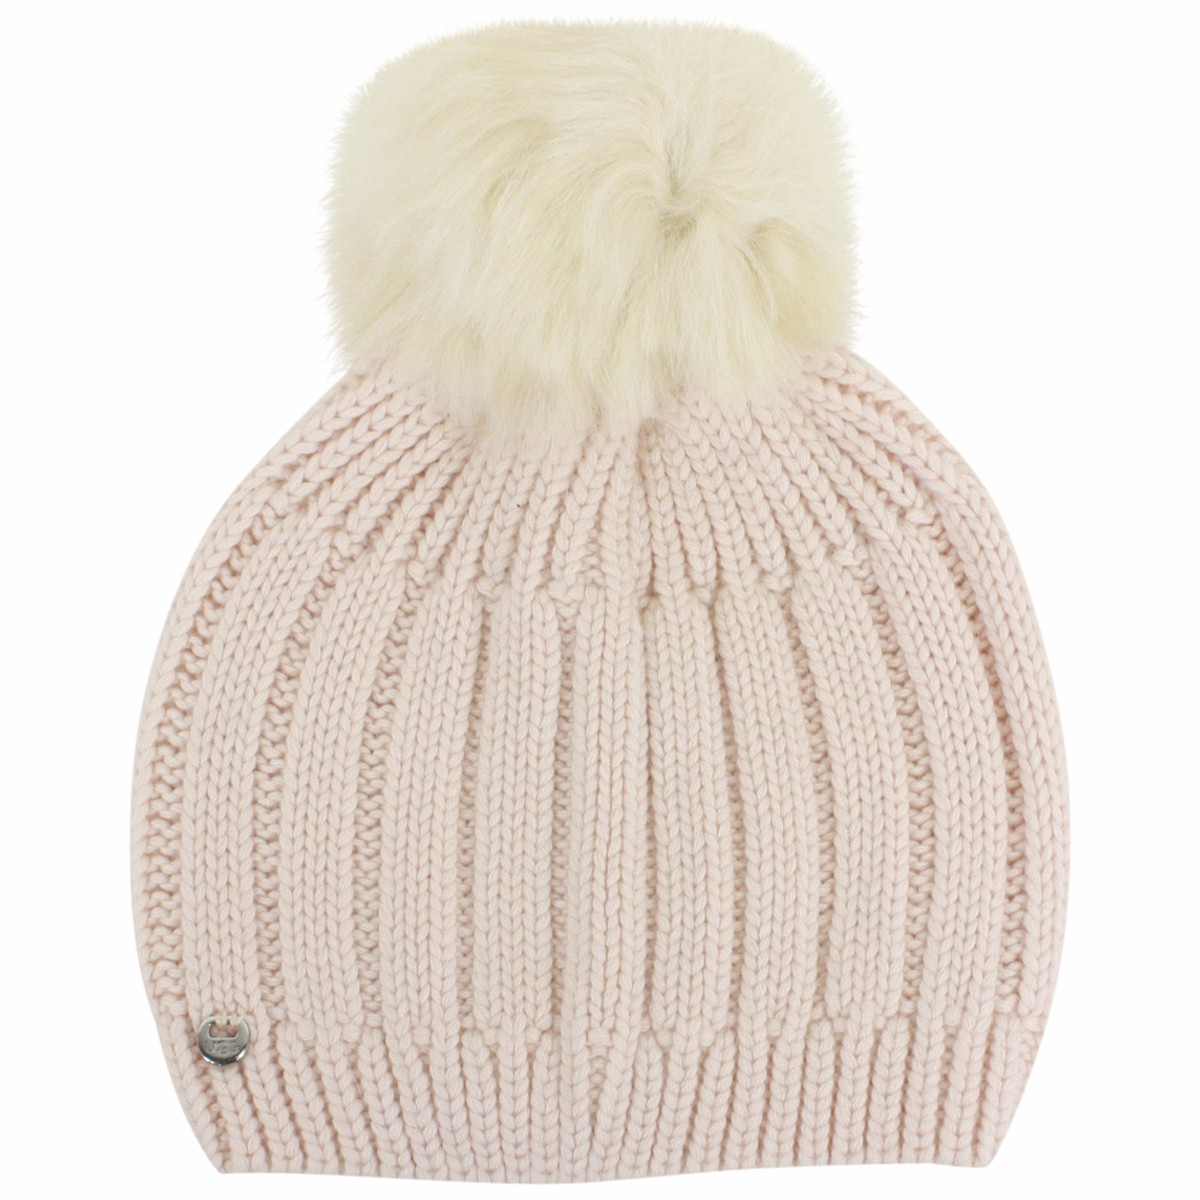 5d8eab197b6 Ugg Women s Solid Ribbed Pearl Winter Beanie Hat With Pom (One Size ...